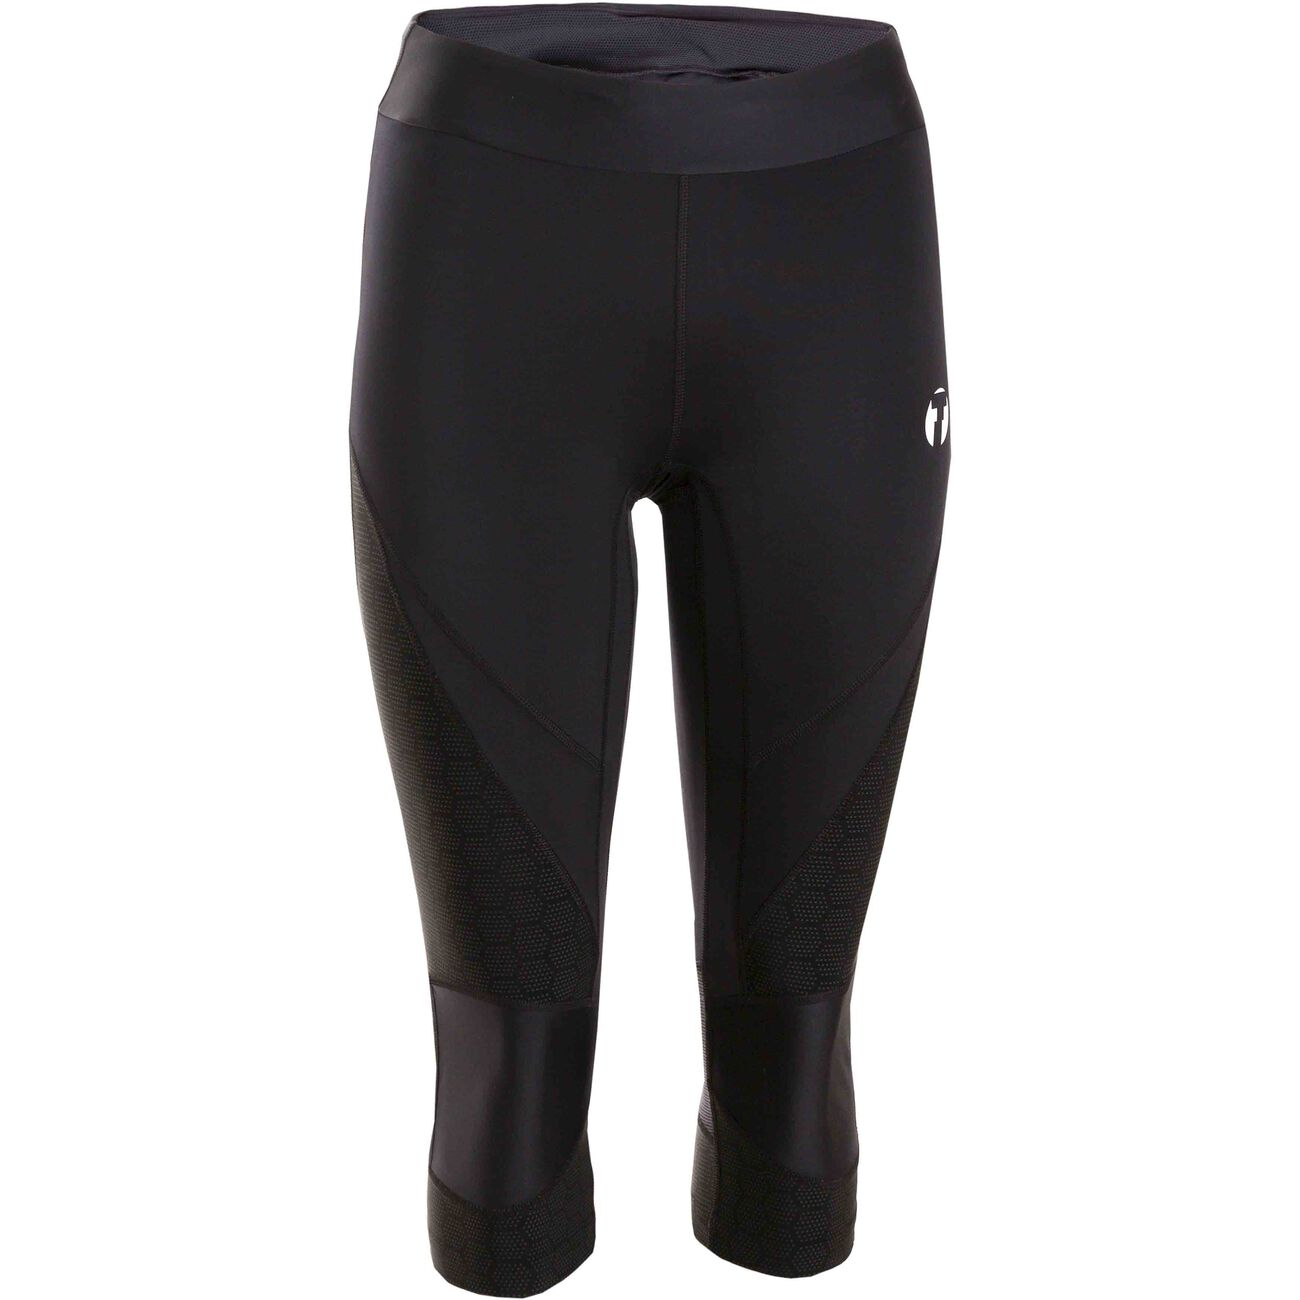 Trail 3/4 tights women's